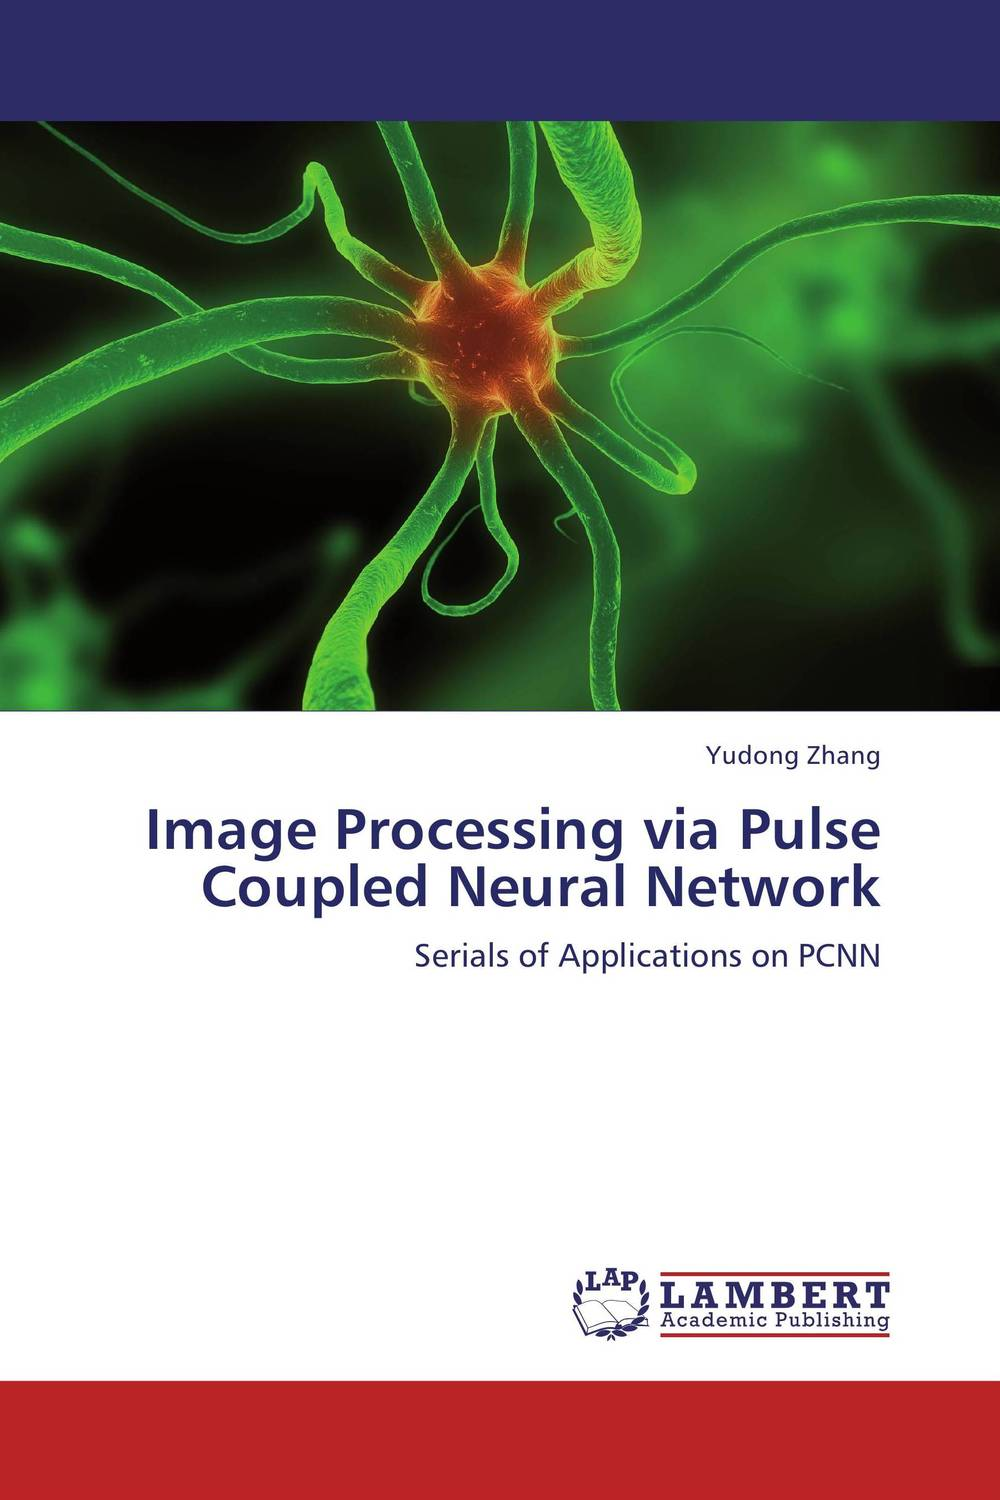 Image Processing via Pulse Coupled Neural Network dermoscopic image segmentation using fuzzy techniques